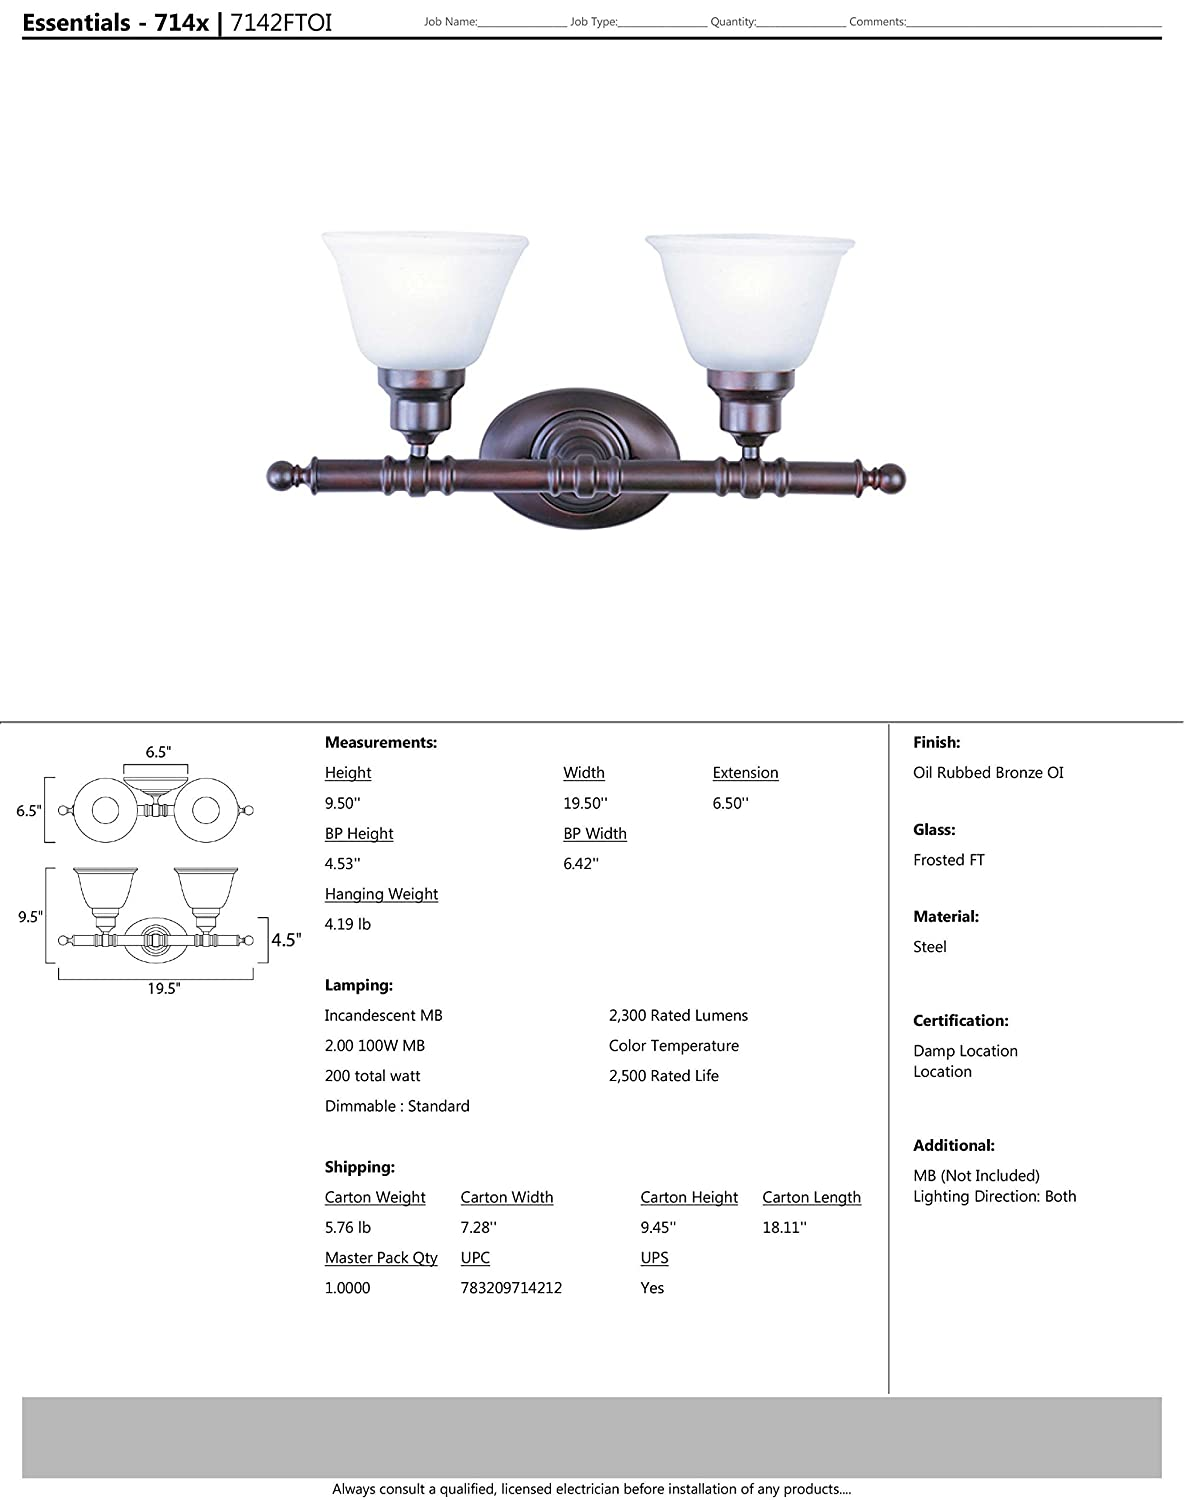 Frosted Glass MB Incandescent Incandescent Bulb Imitation Silk Shade Material Standard Dimmable Rated Lumens Dry Safety Rating 60W Max. Maxim 7142FTOI Essentials 2-Light Bath Vanity Wall Sconce Oil Rubbed Bronze Finish